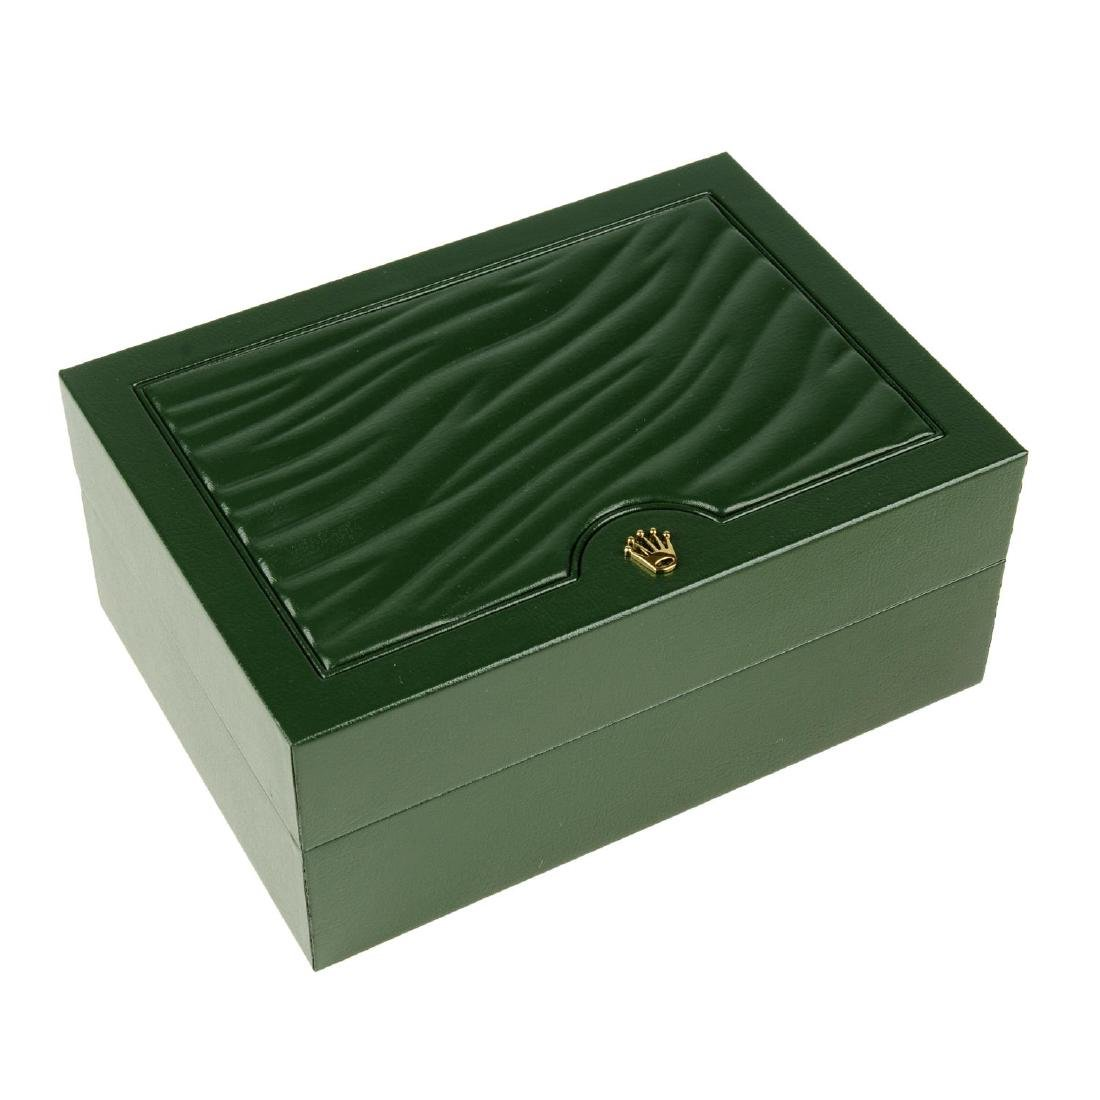 ROLEX - a complete watch box